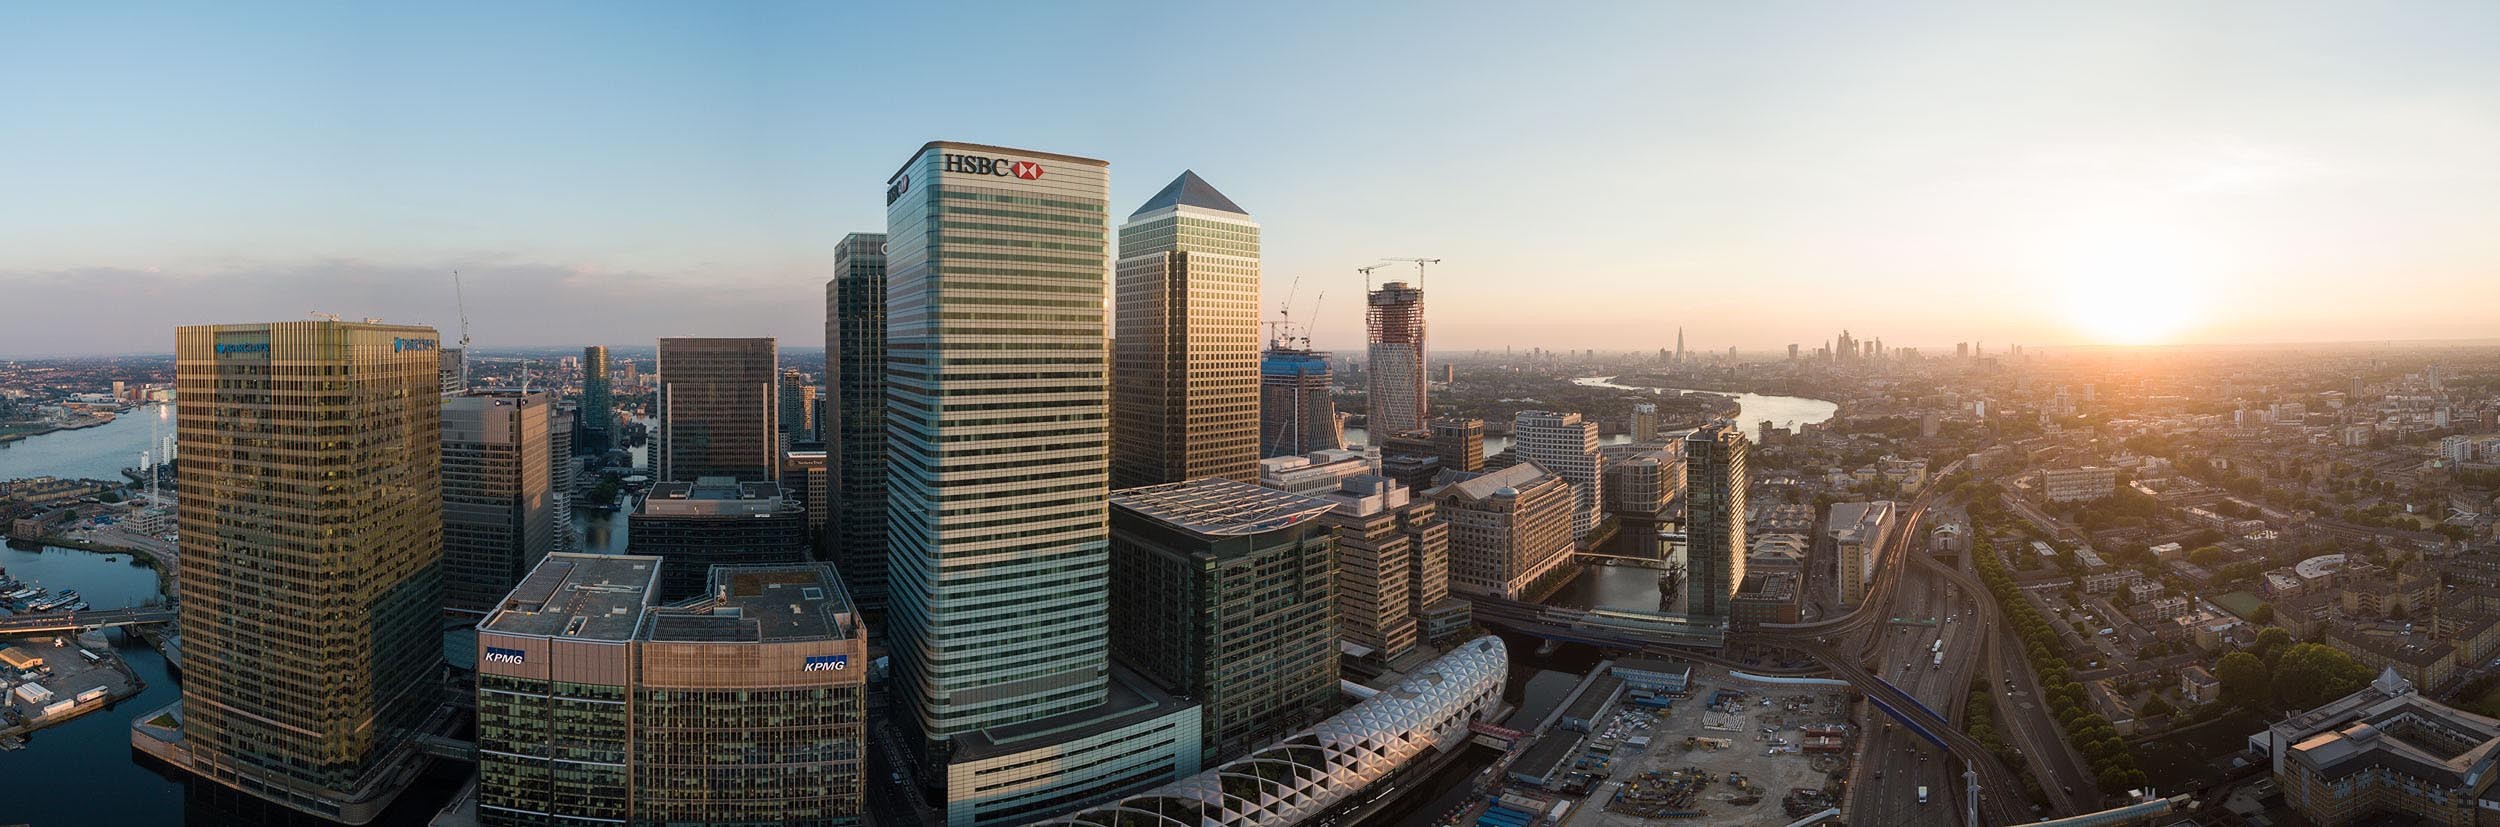 canary-wharf-london-panoramic-sunset-cityscape-docklands